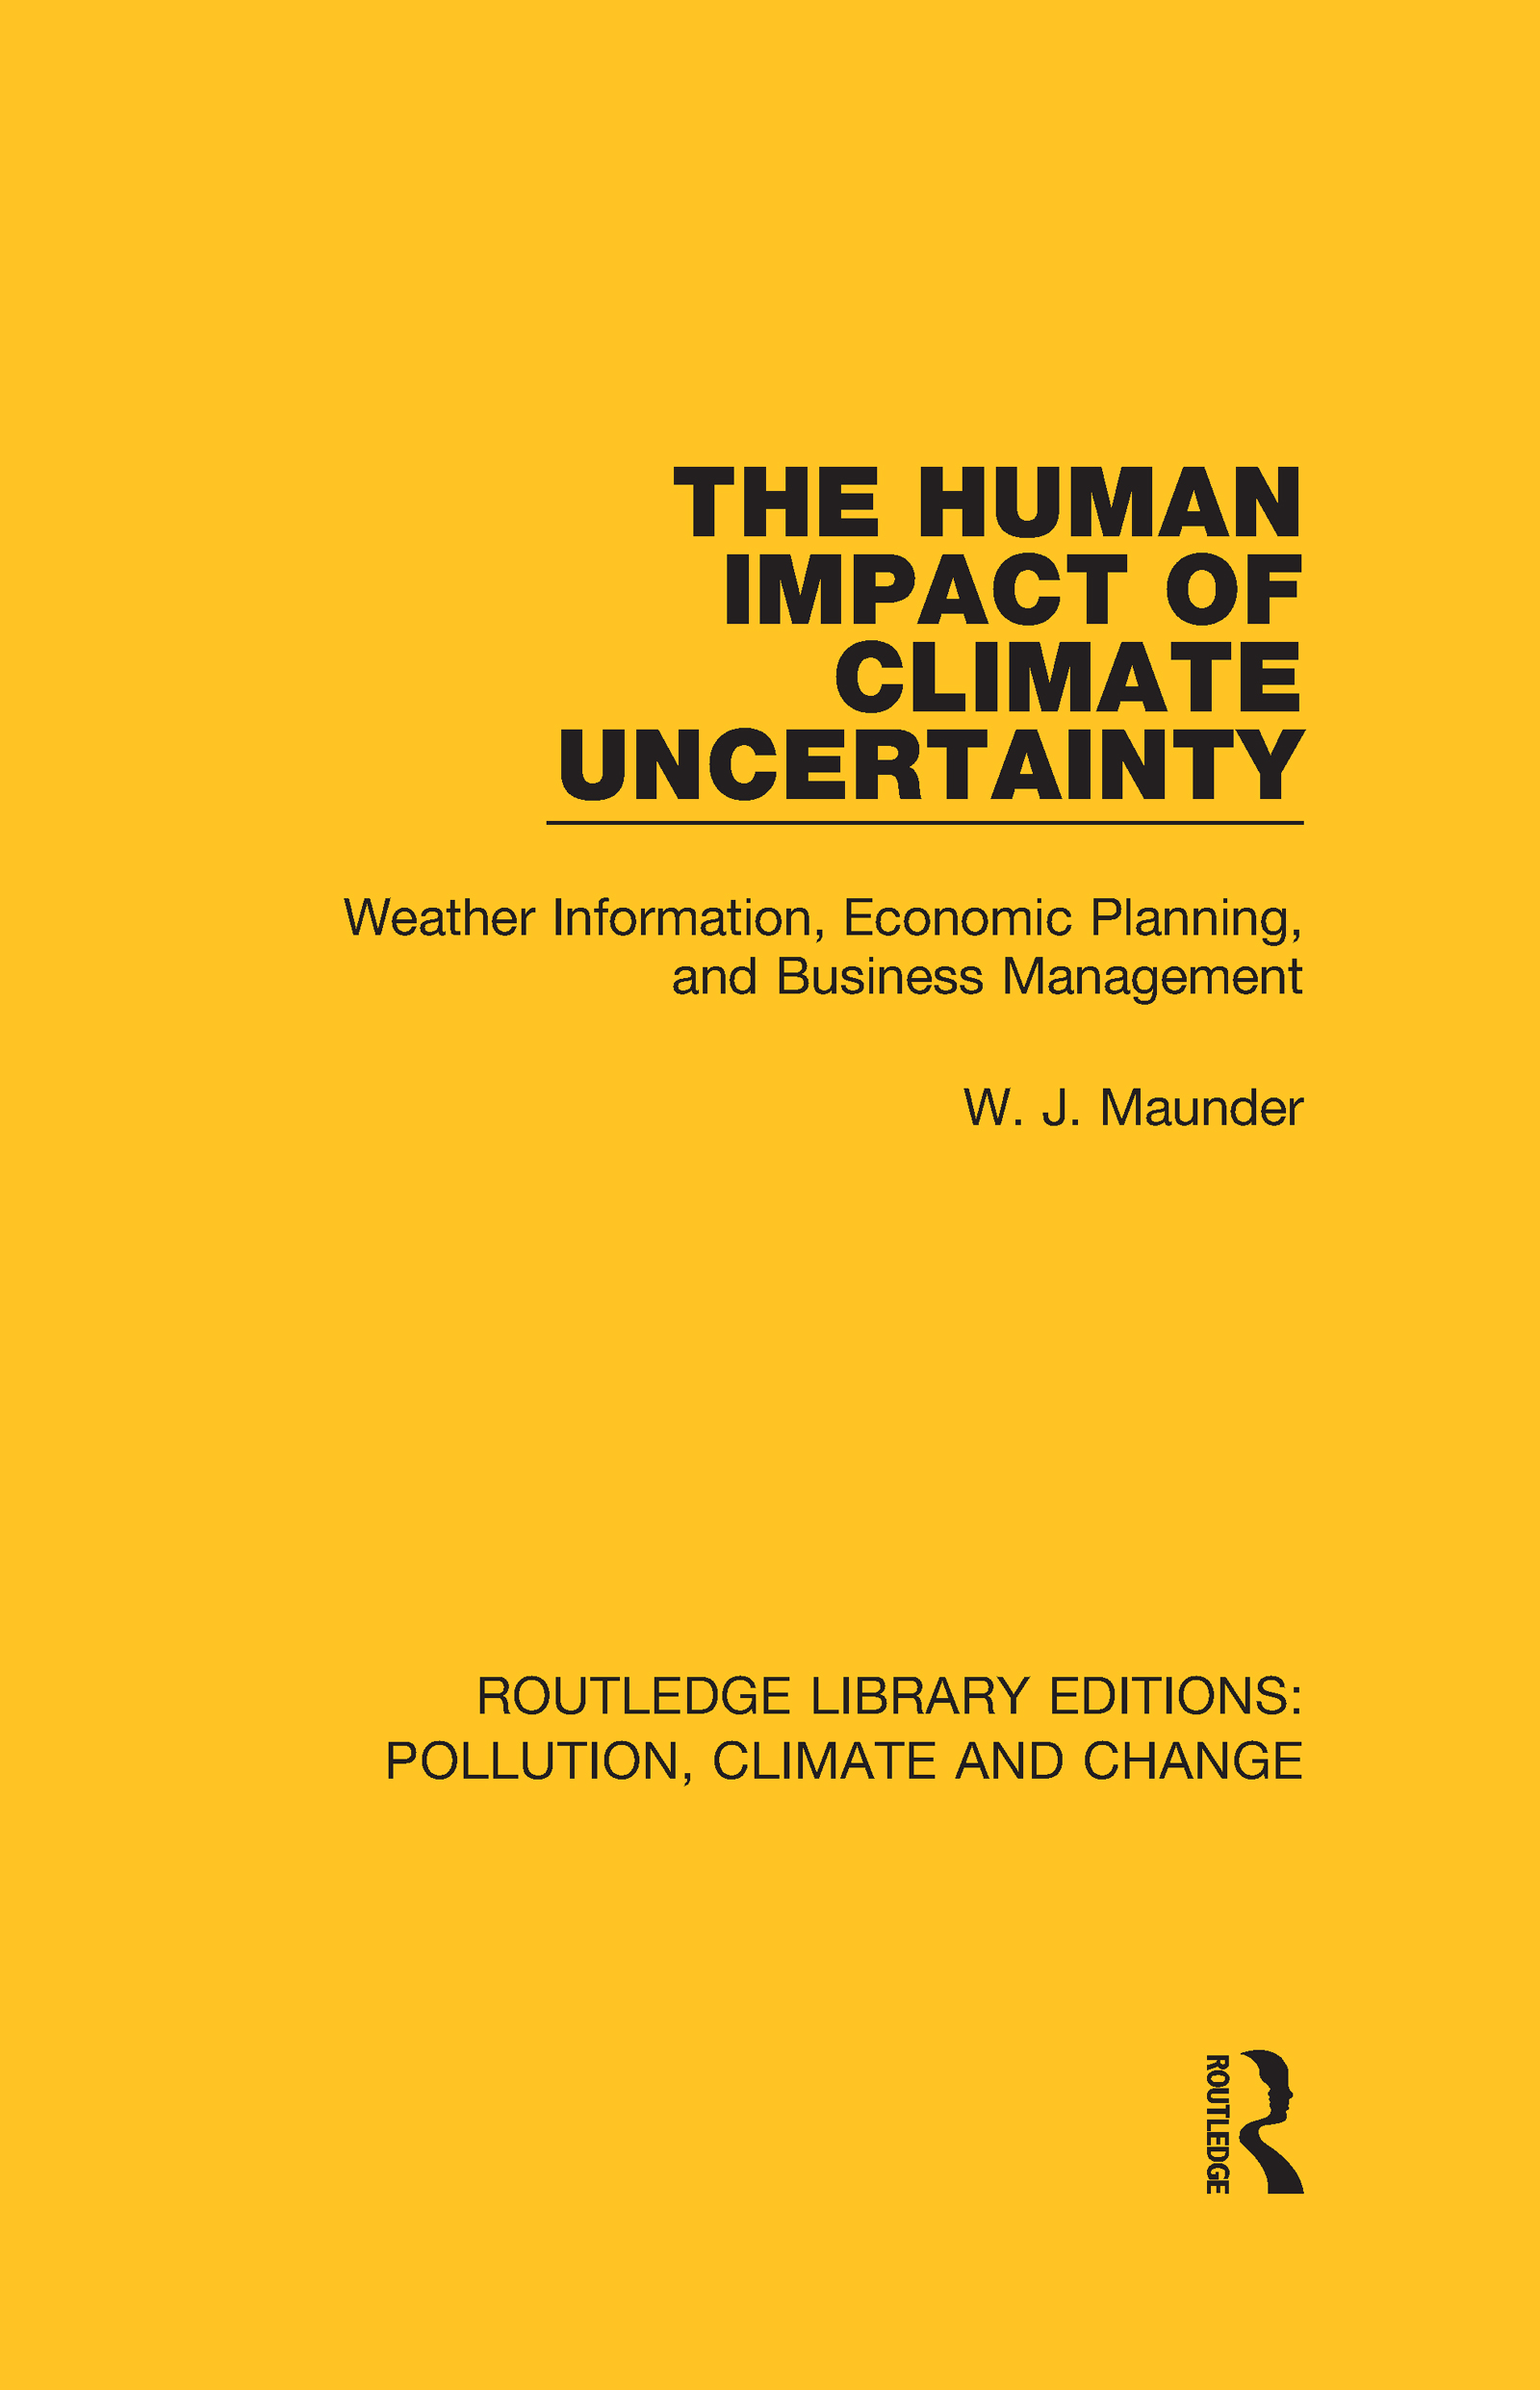 The Human Impact of Climate Uncertainty